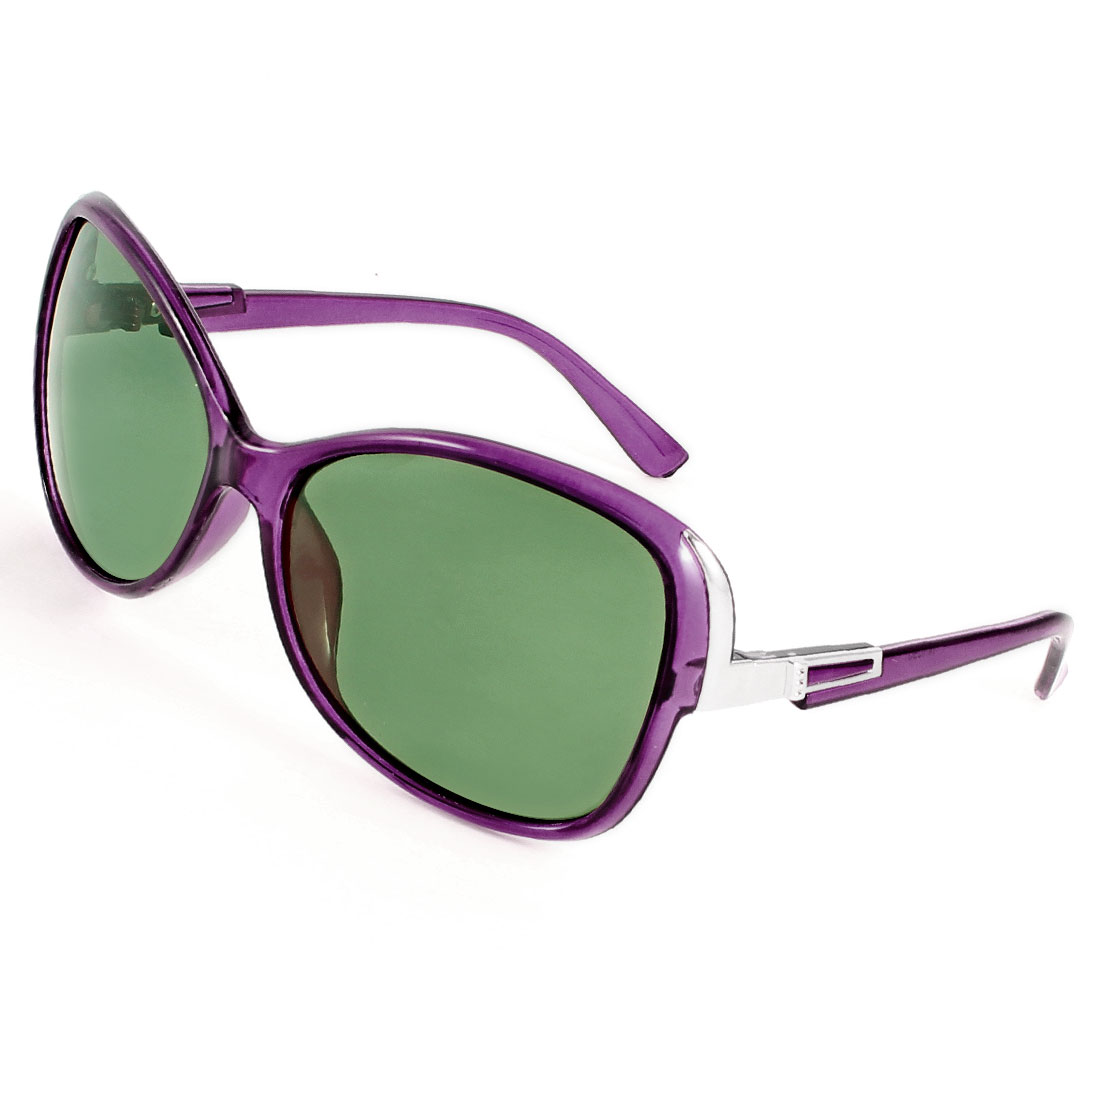 Outdoor Sports Purple Plastic Arms Single Bridge Polarized Sunglasses for Ladies